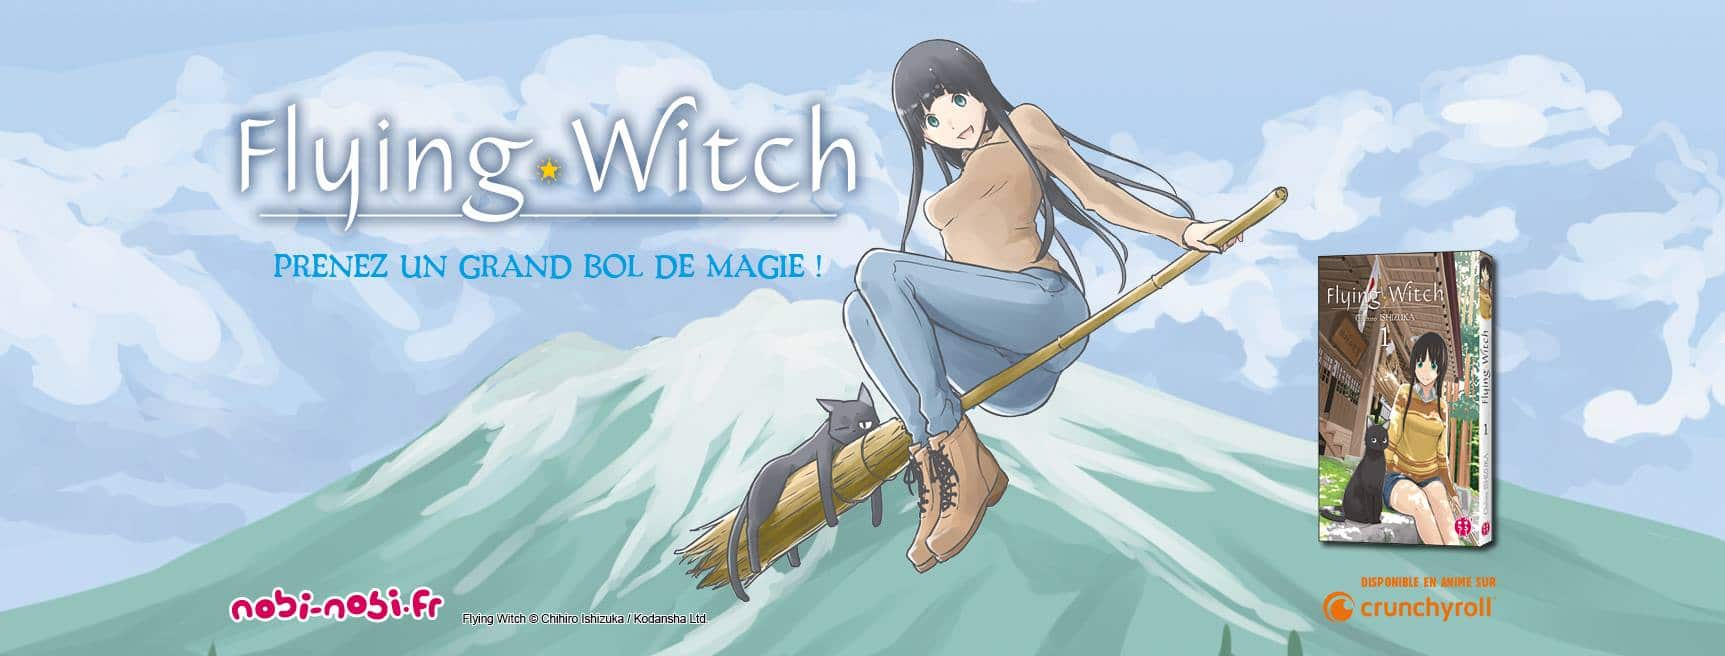 flying witch manga tome 1